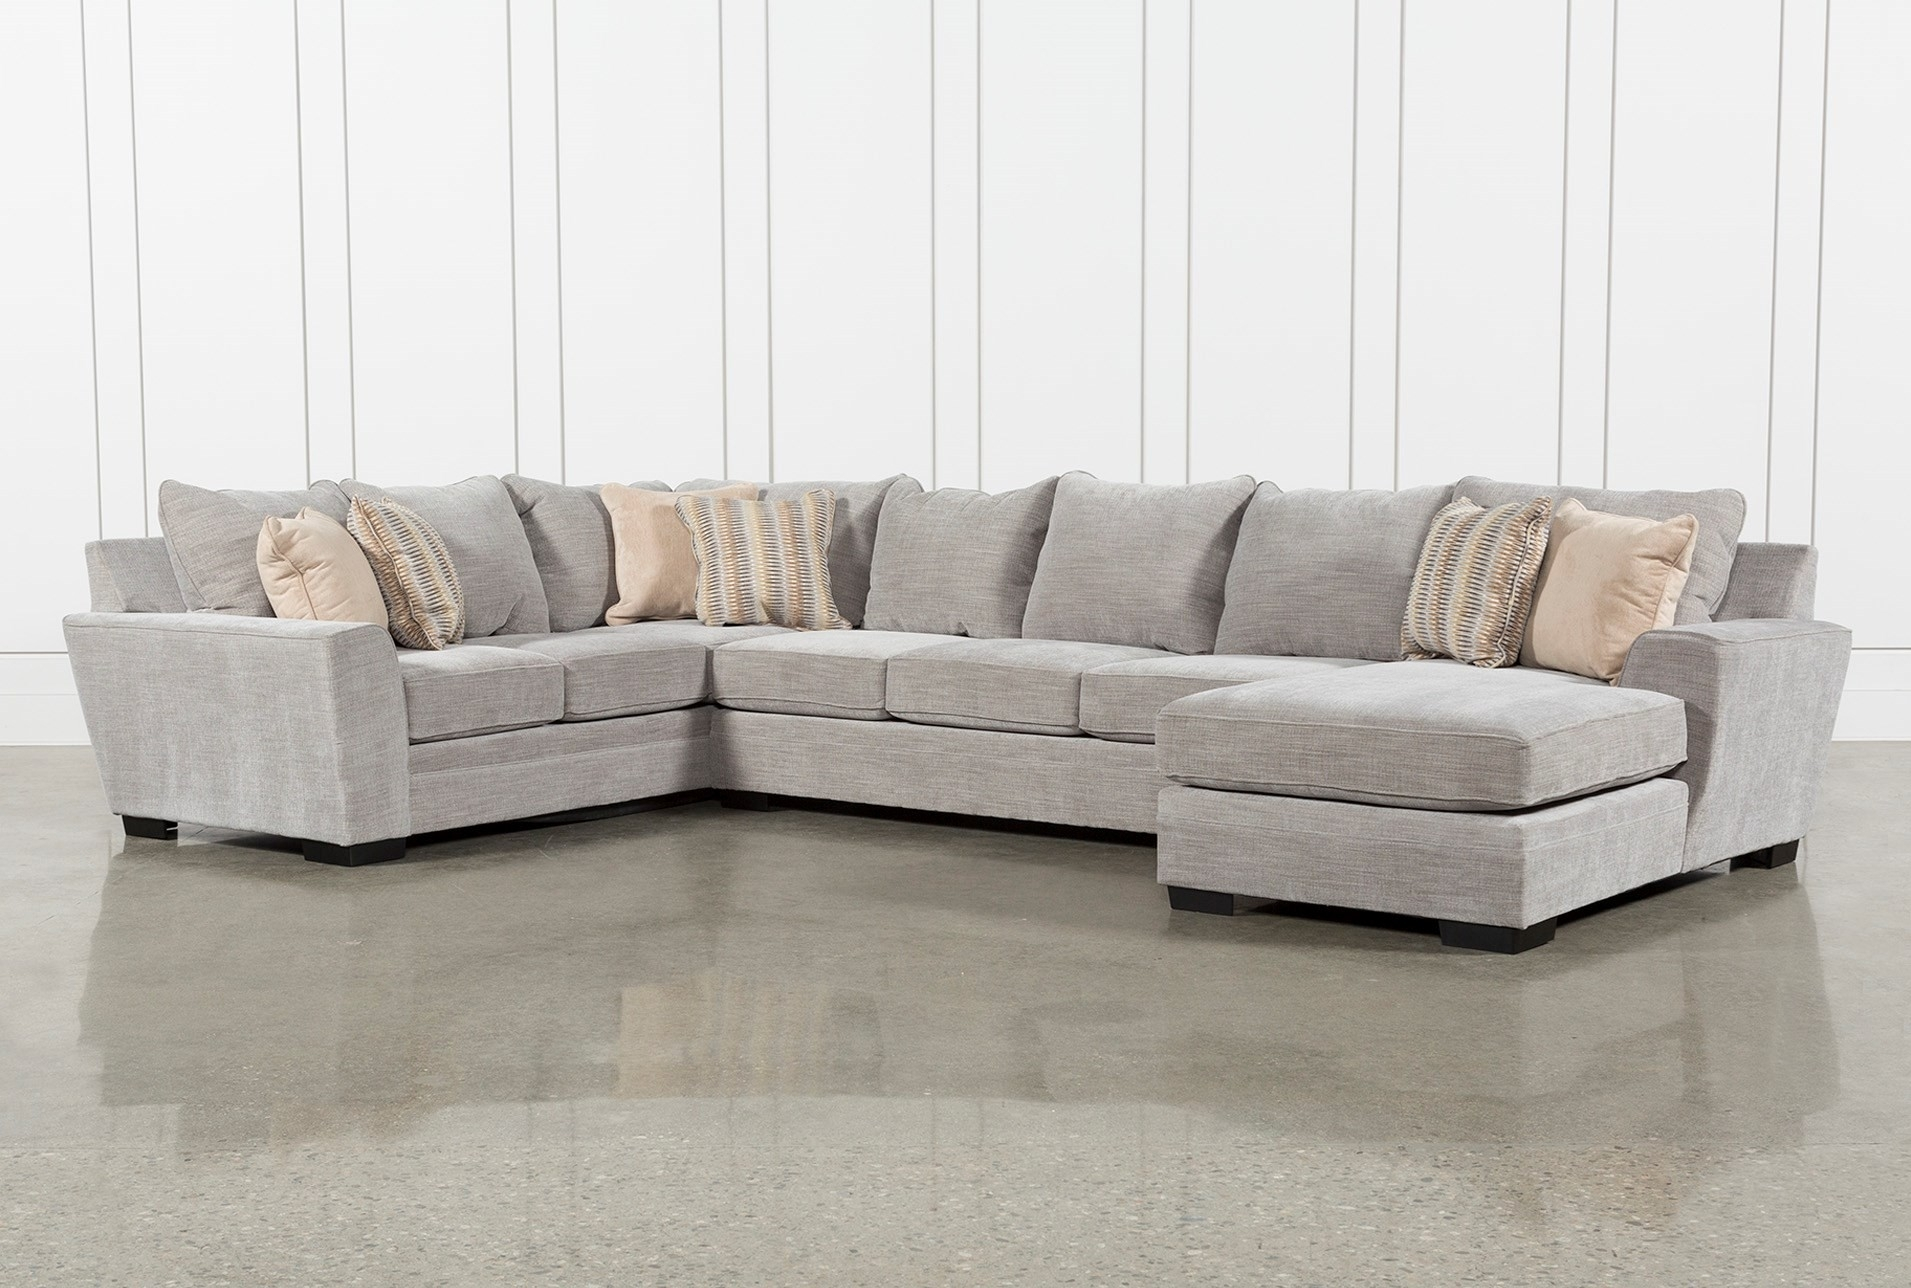 3 Piece Sectional Malbry Point W Laf Chaise Living Spaces 223533 0 For Malbry Point 3 Piece Sectionals With Laf Chaise (Photo 1 of 25)